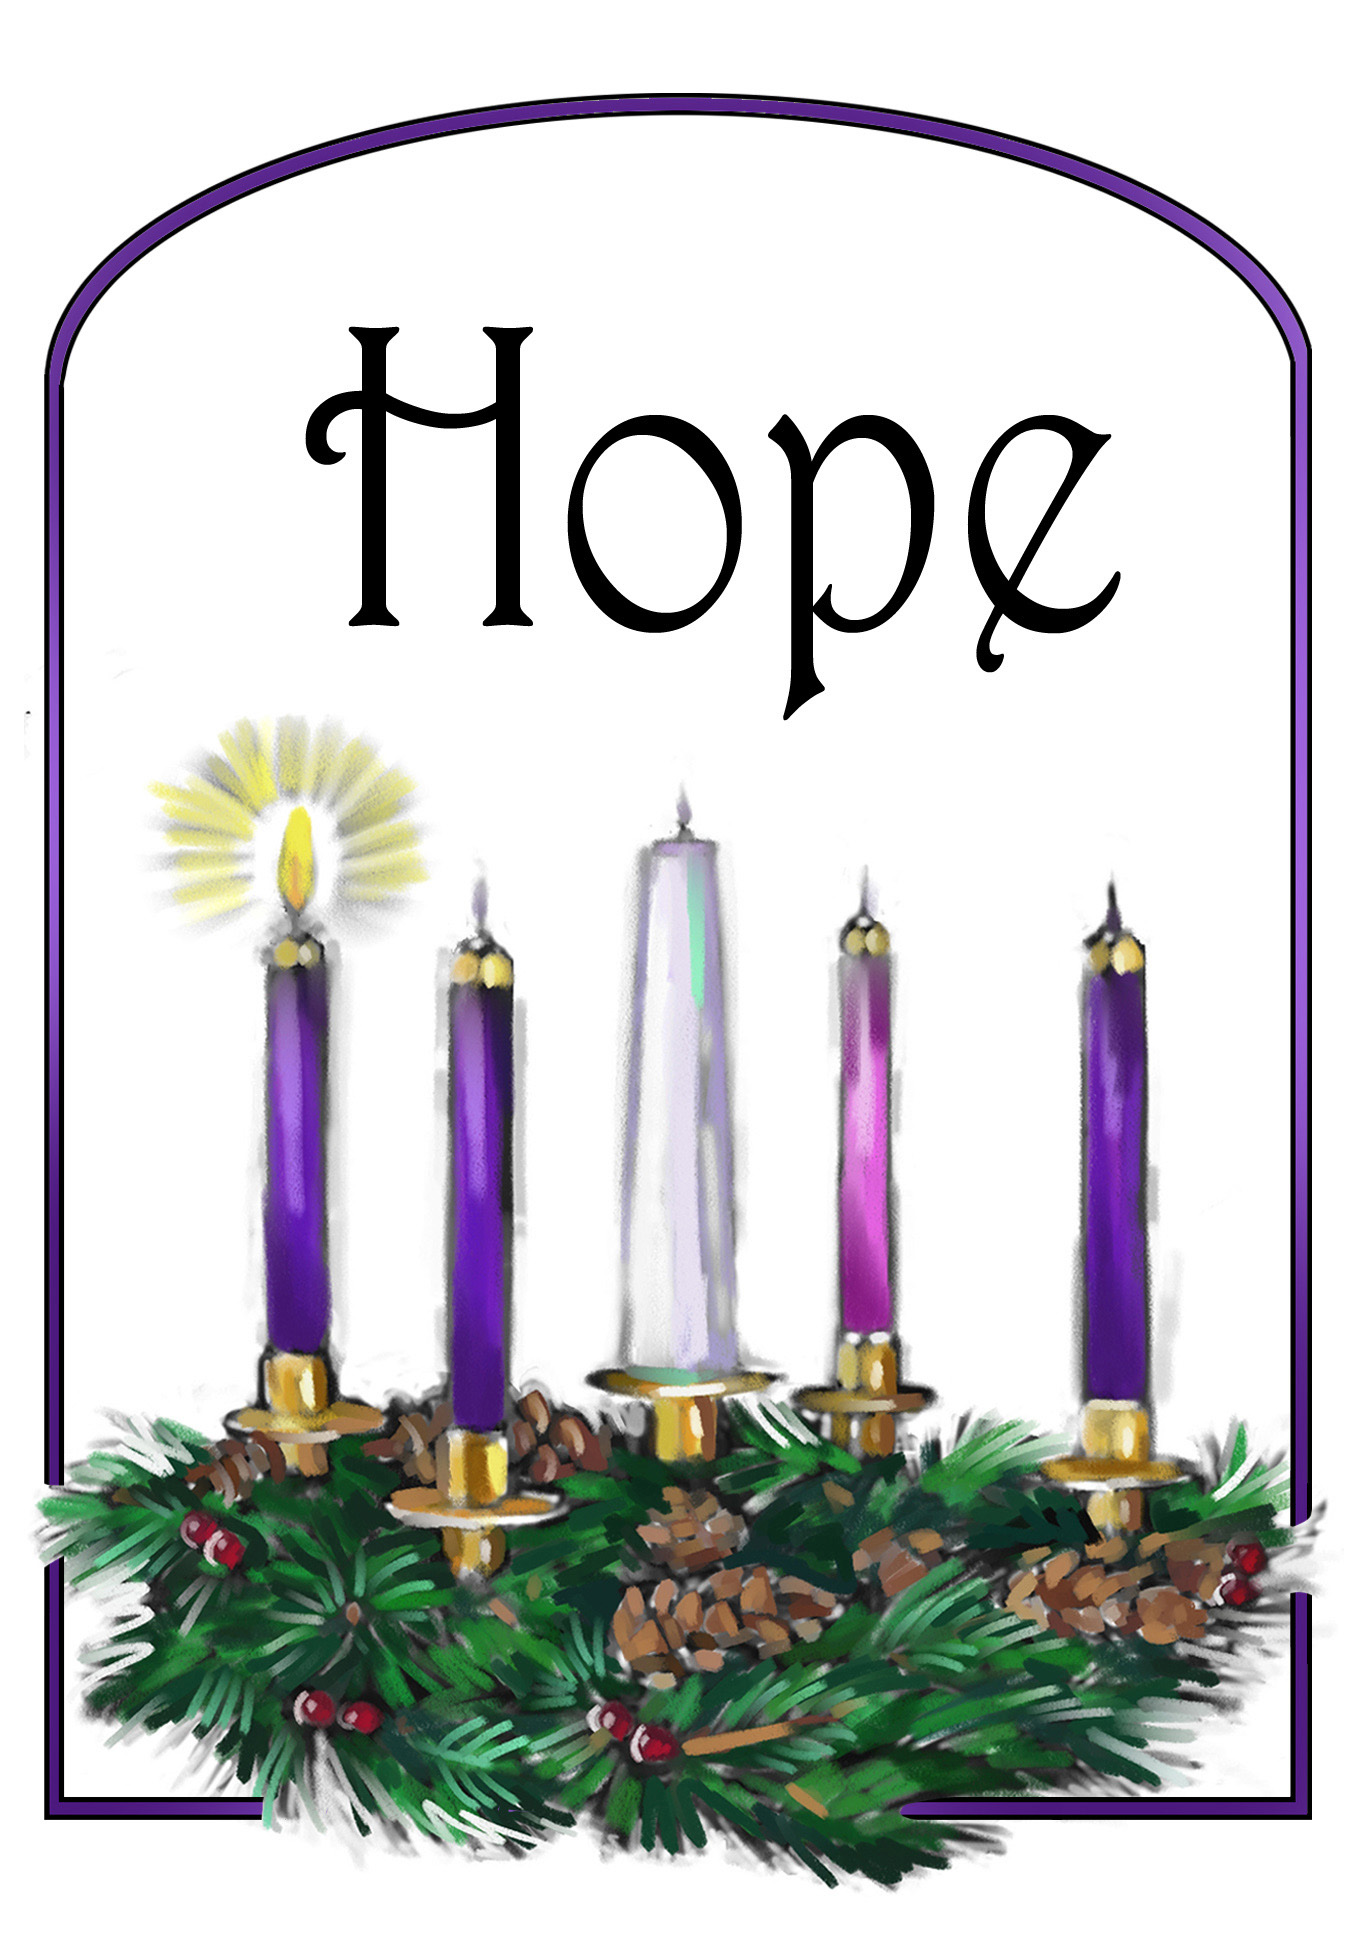 First Sunday Clip Art free image.